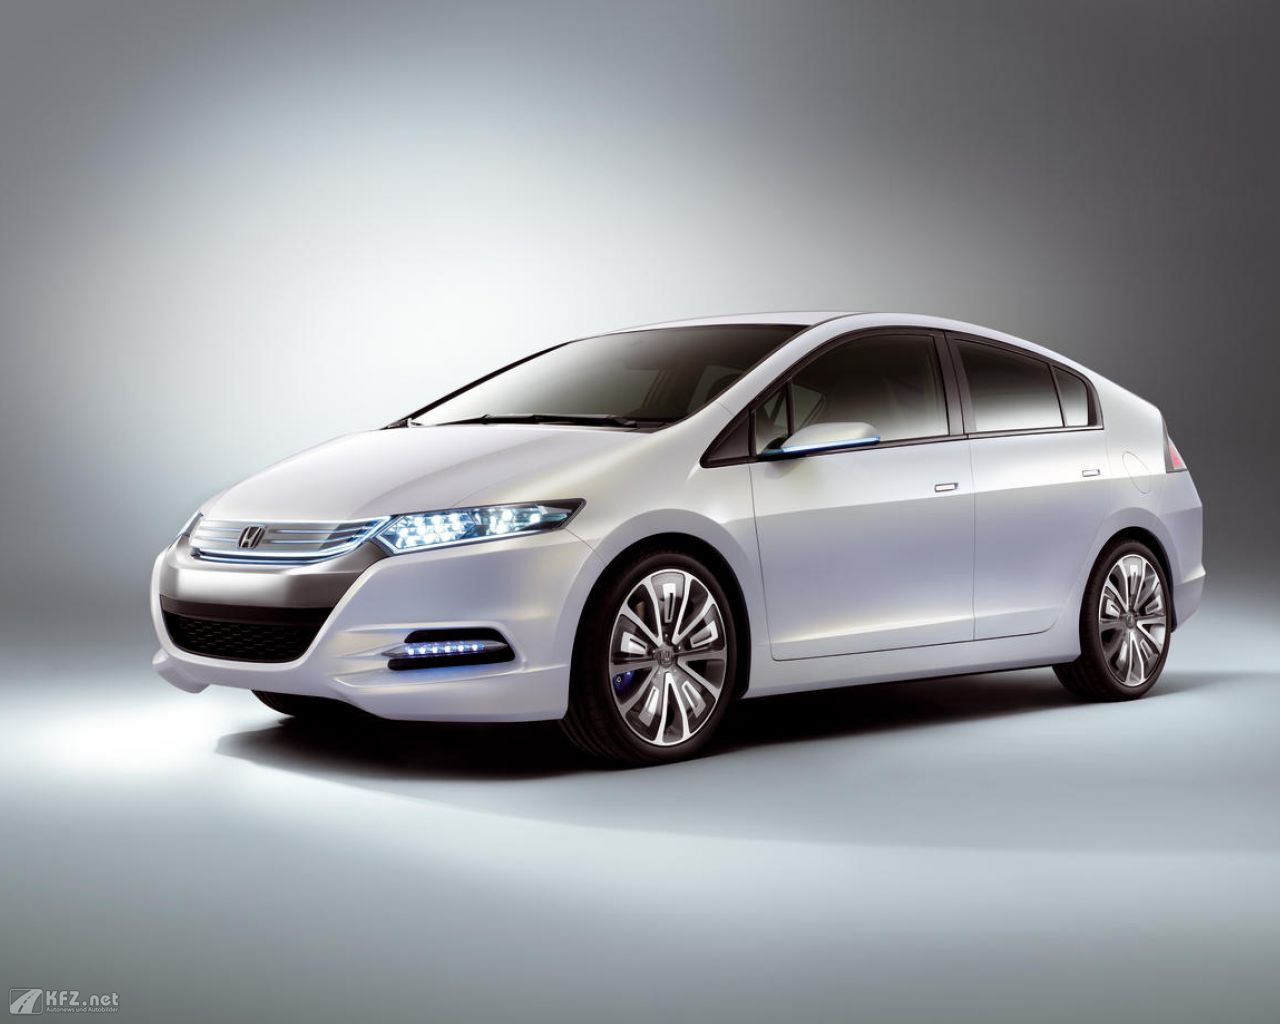 honda-insight-1280x1024-51